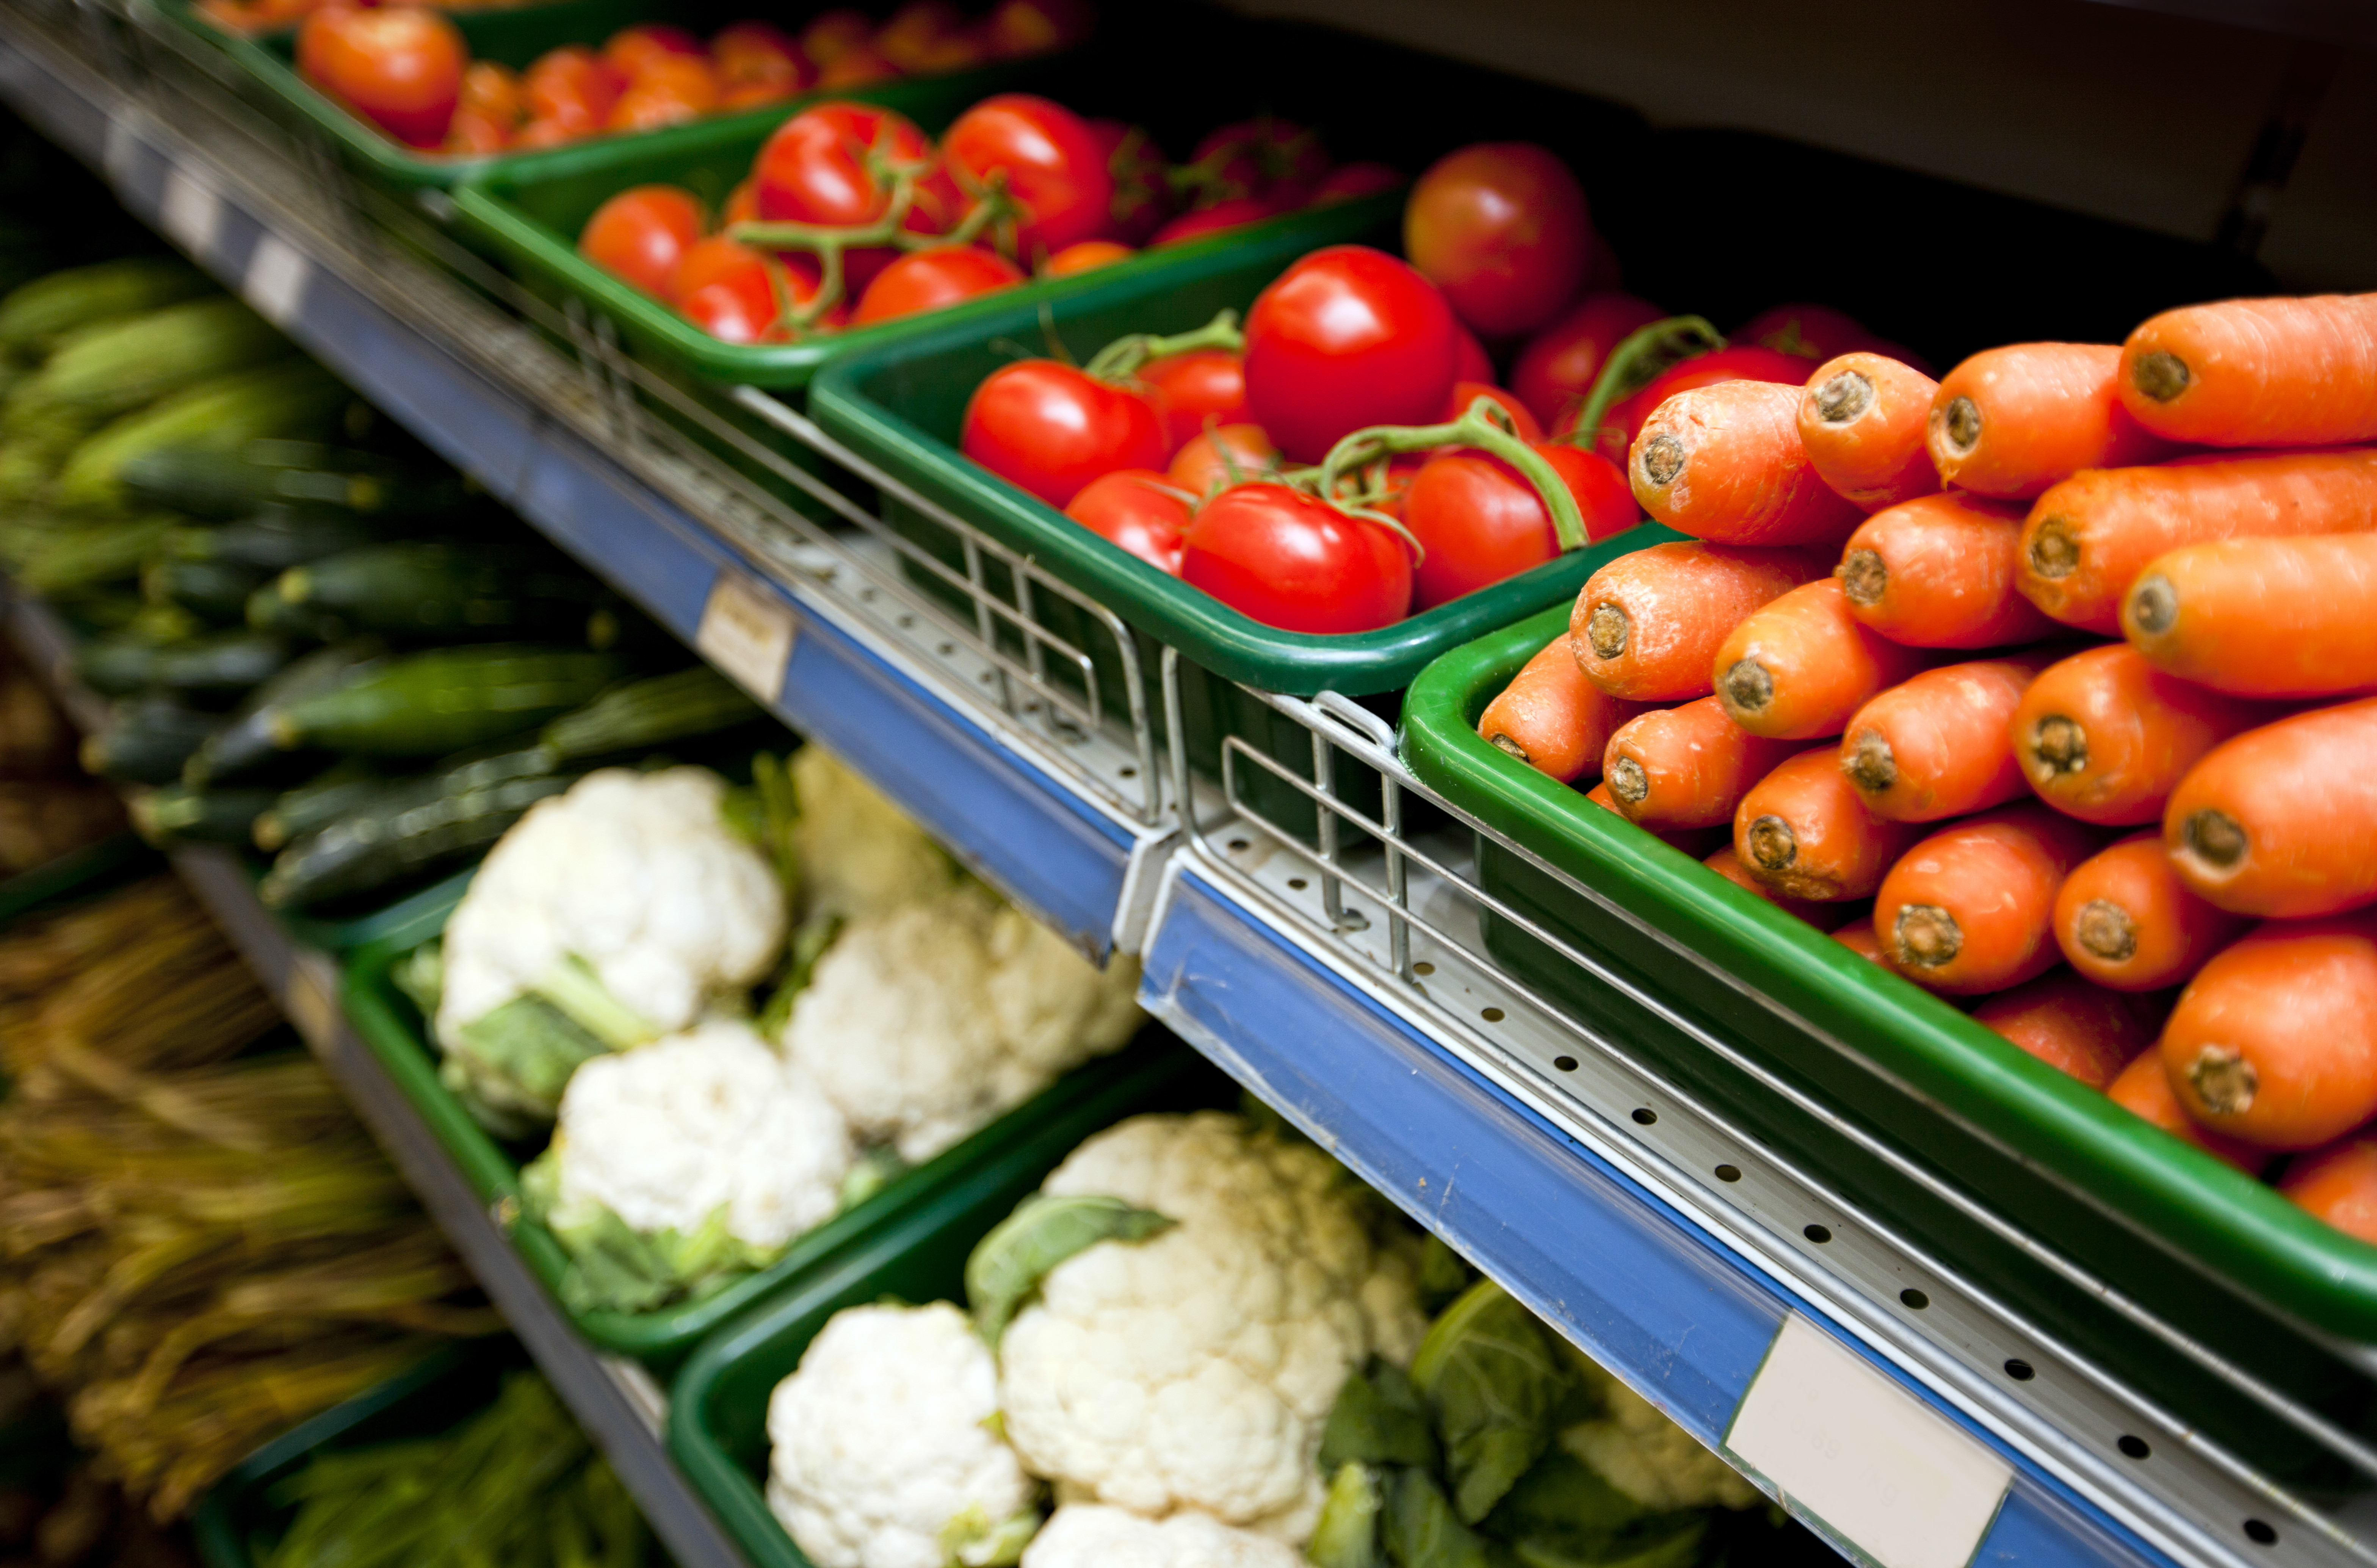 Various vegetables on display in specialty grocery store